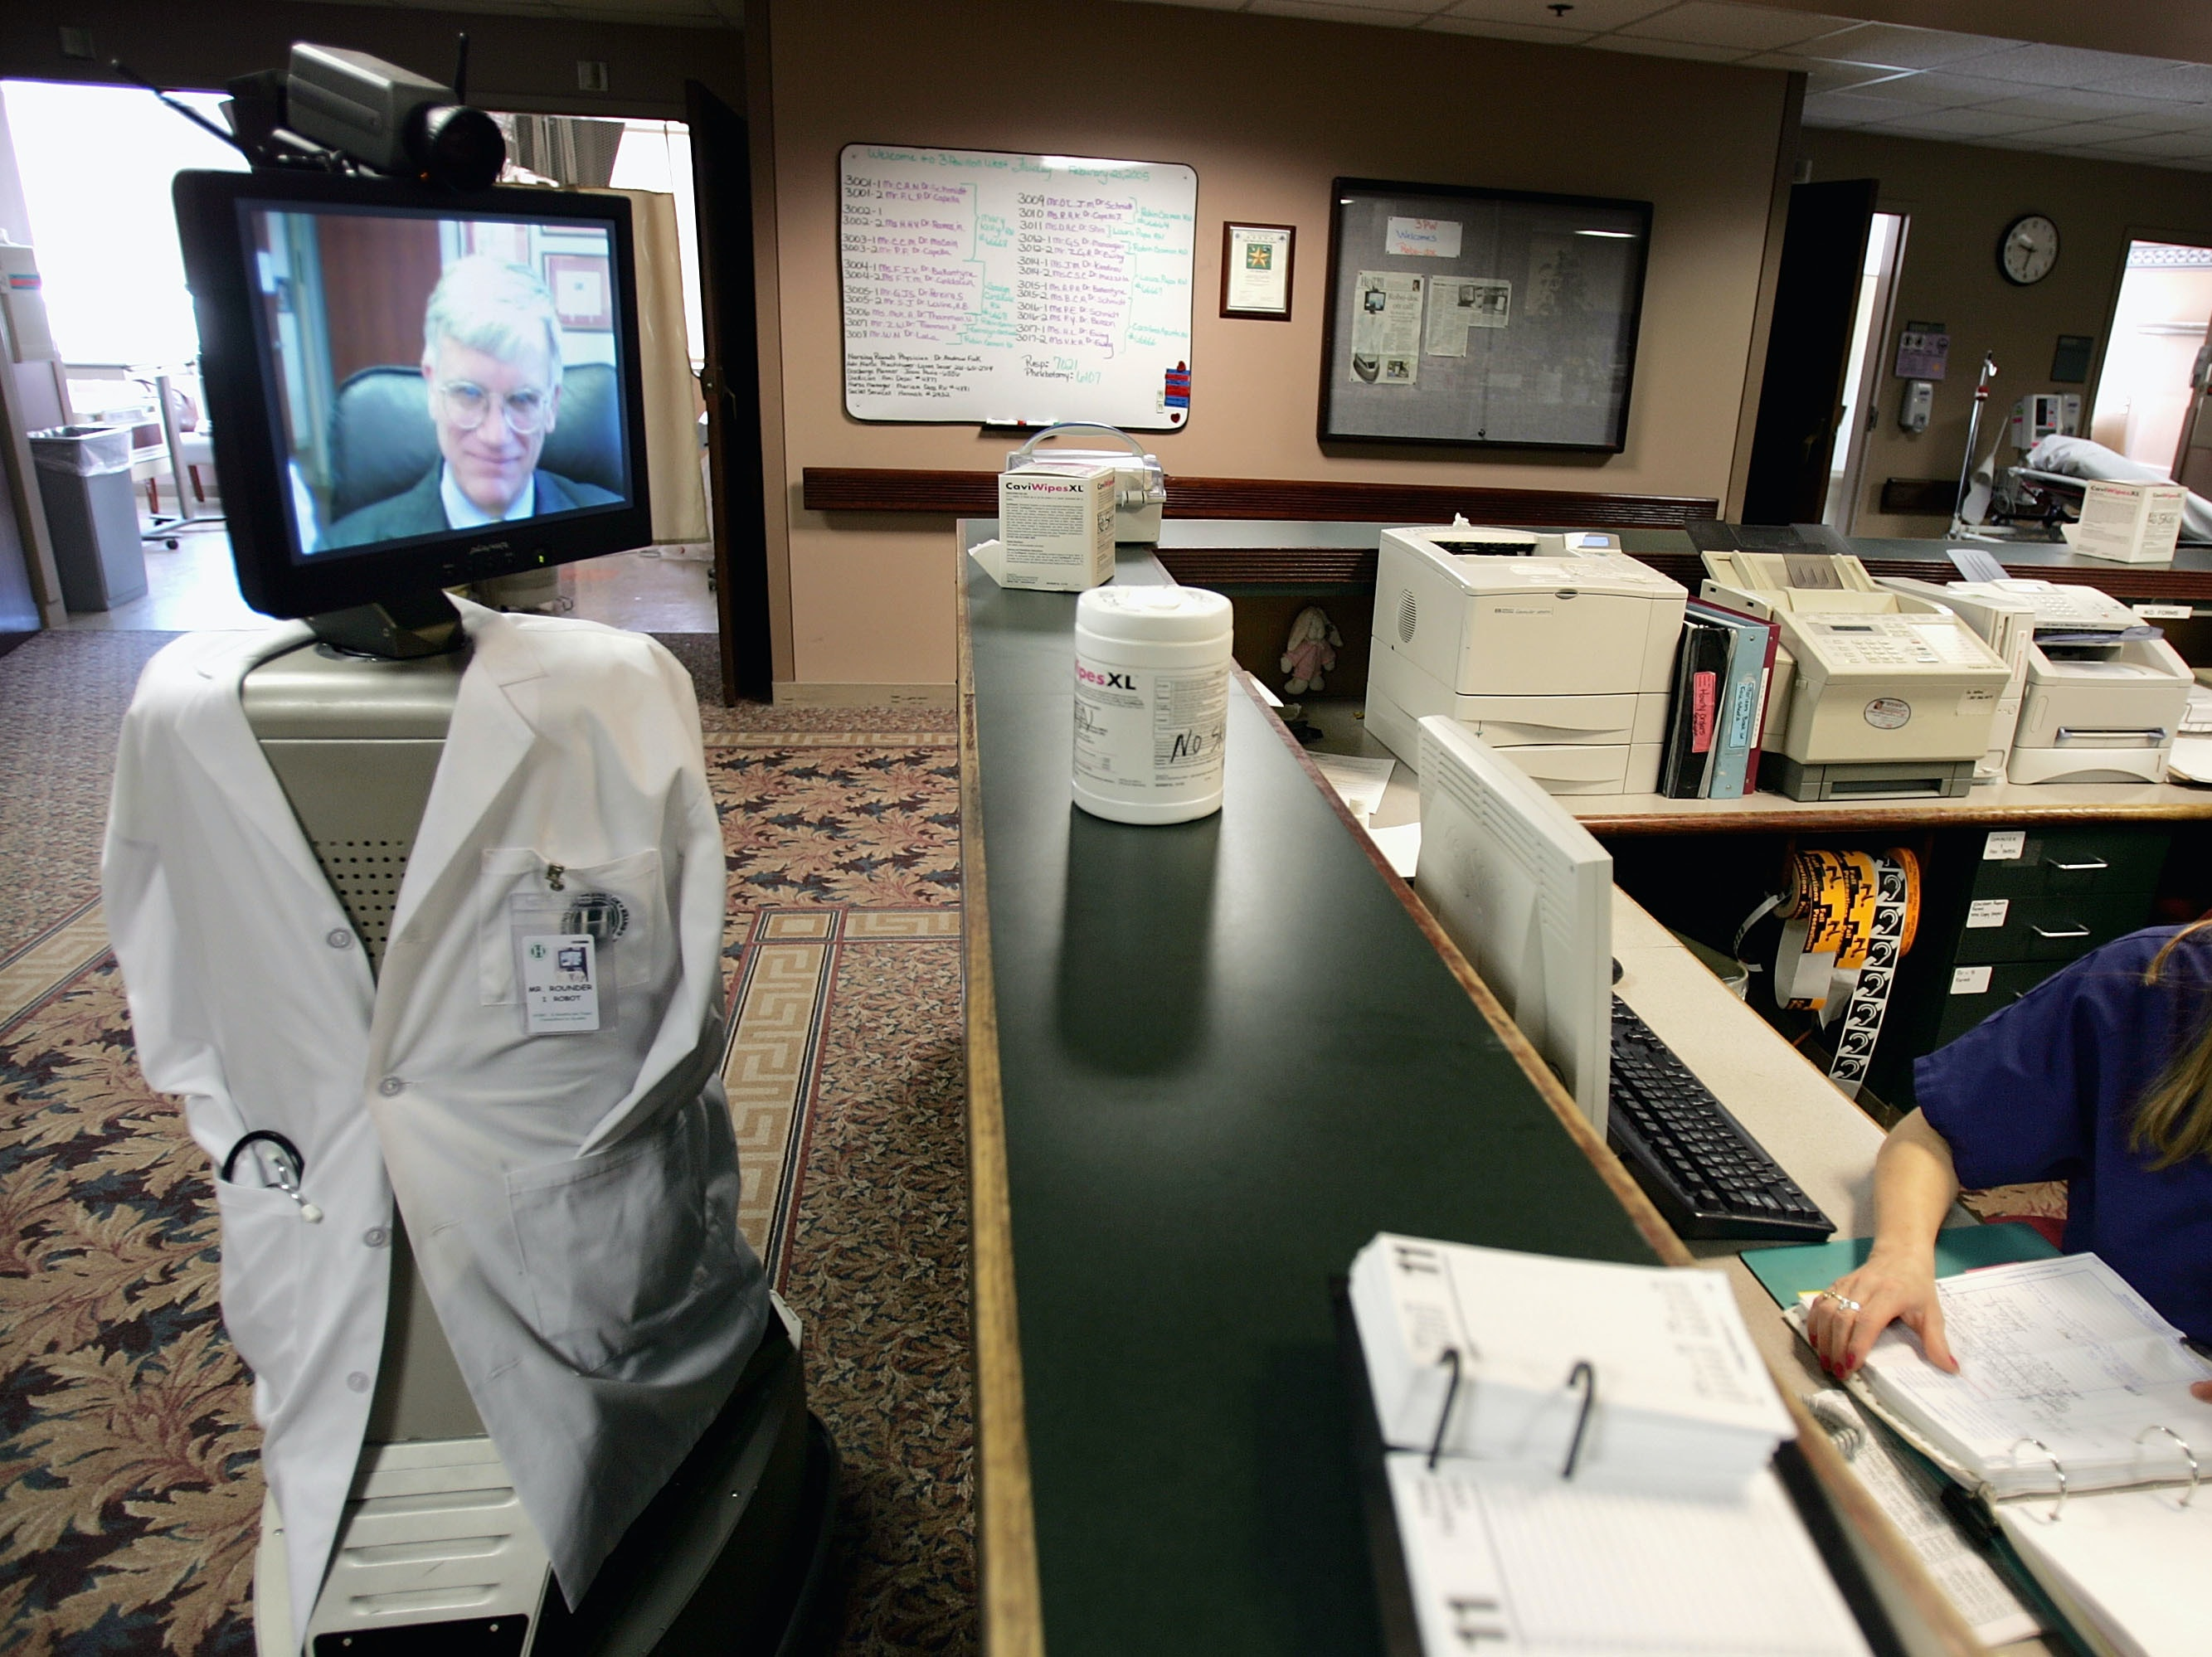 Telepresence Robots May Be Awkward Now, but Expect More of Them by 2020